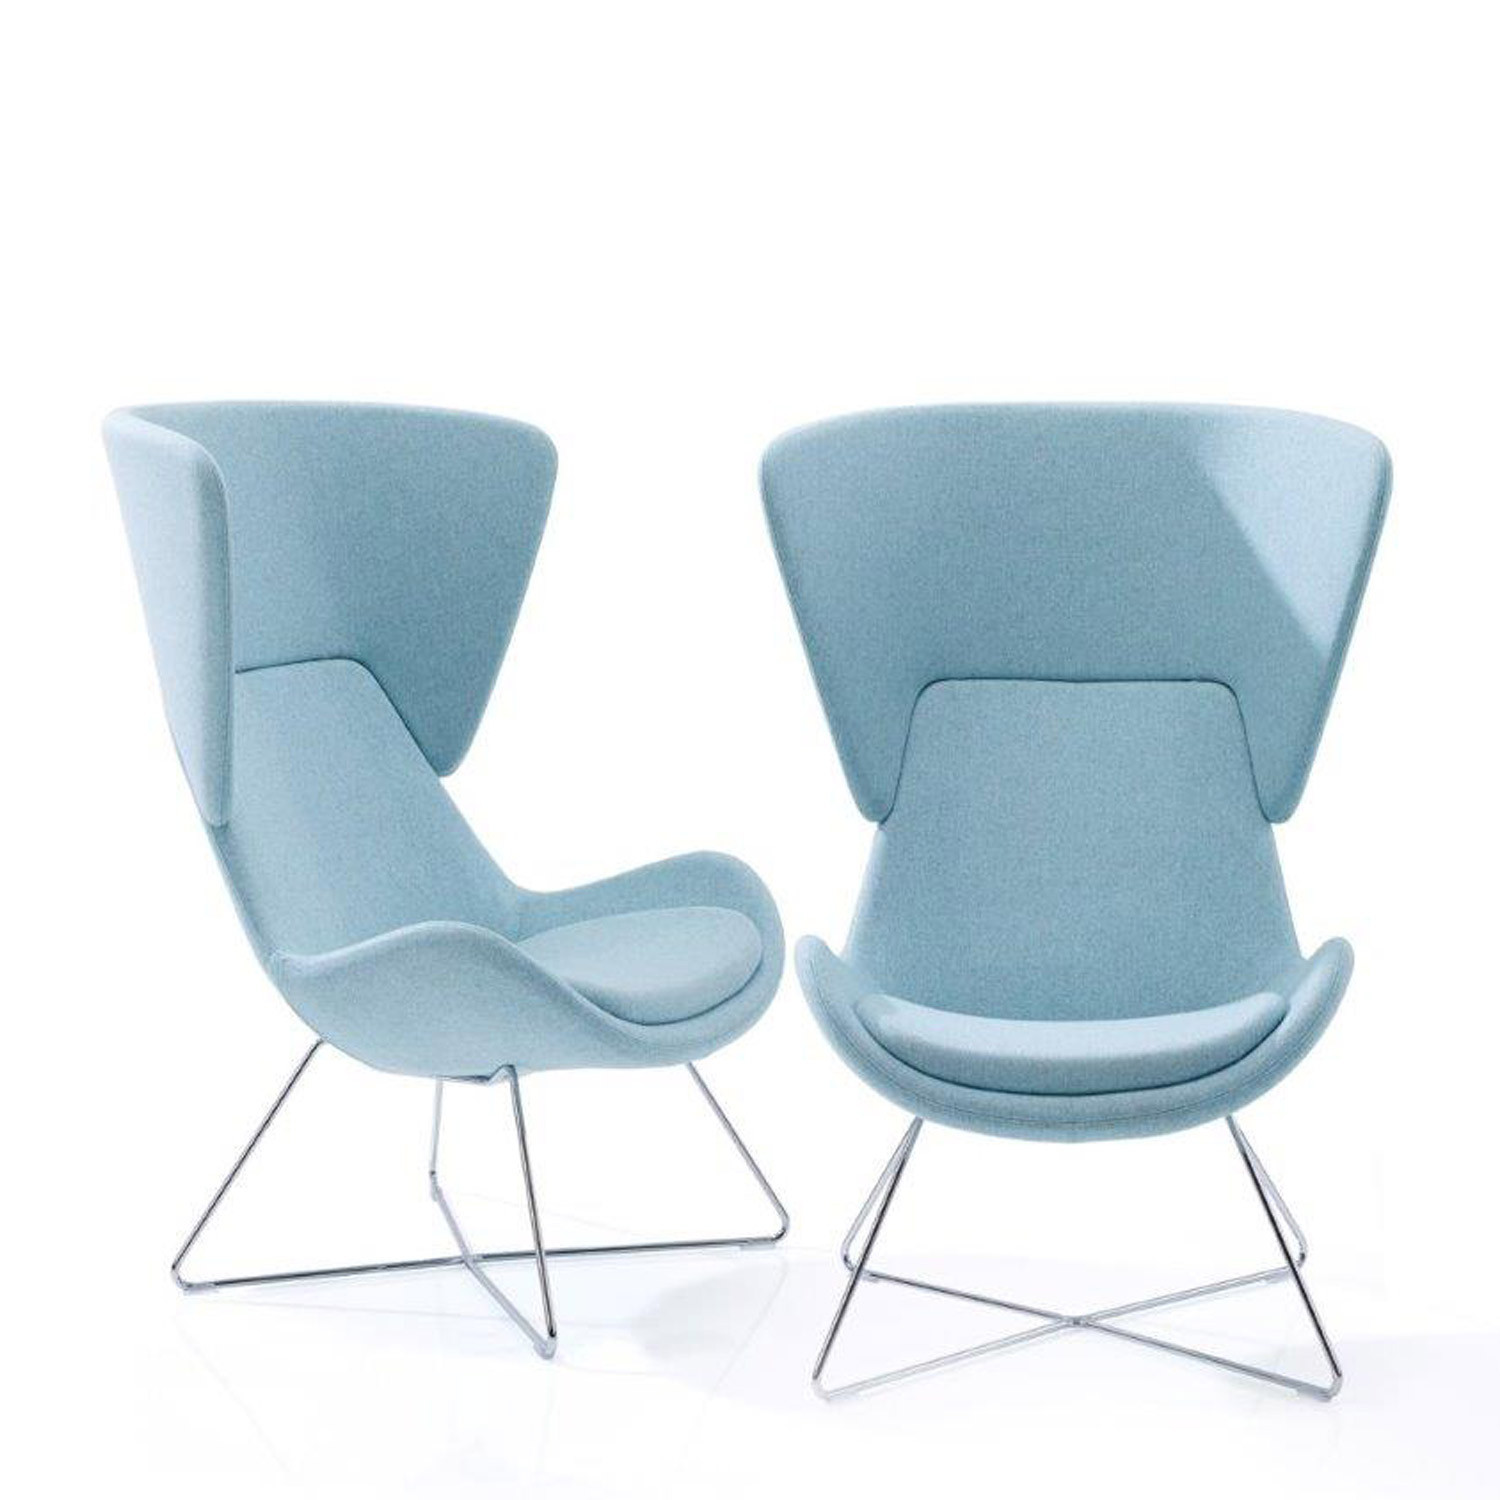 Avi Higgh Wing Back Chairs